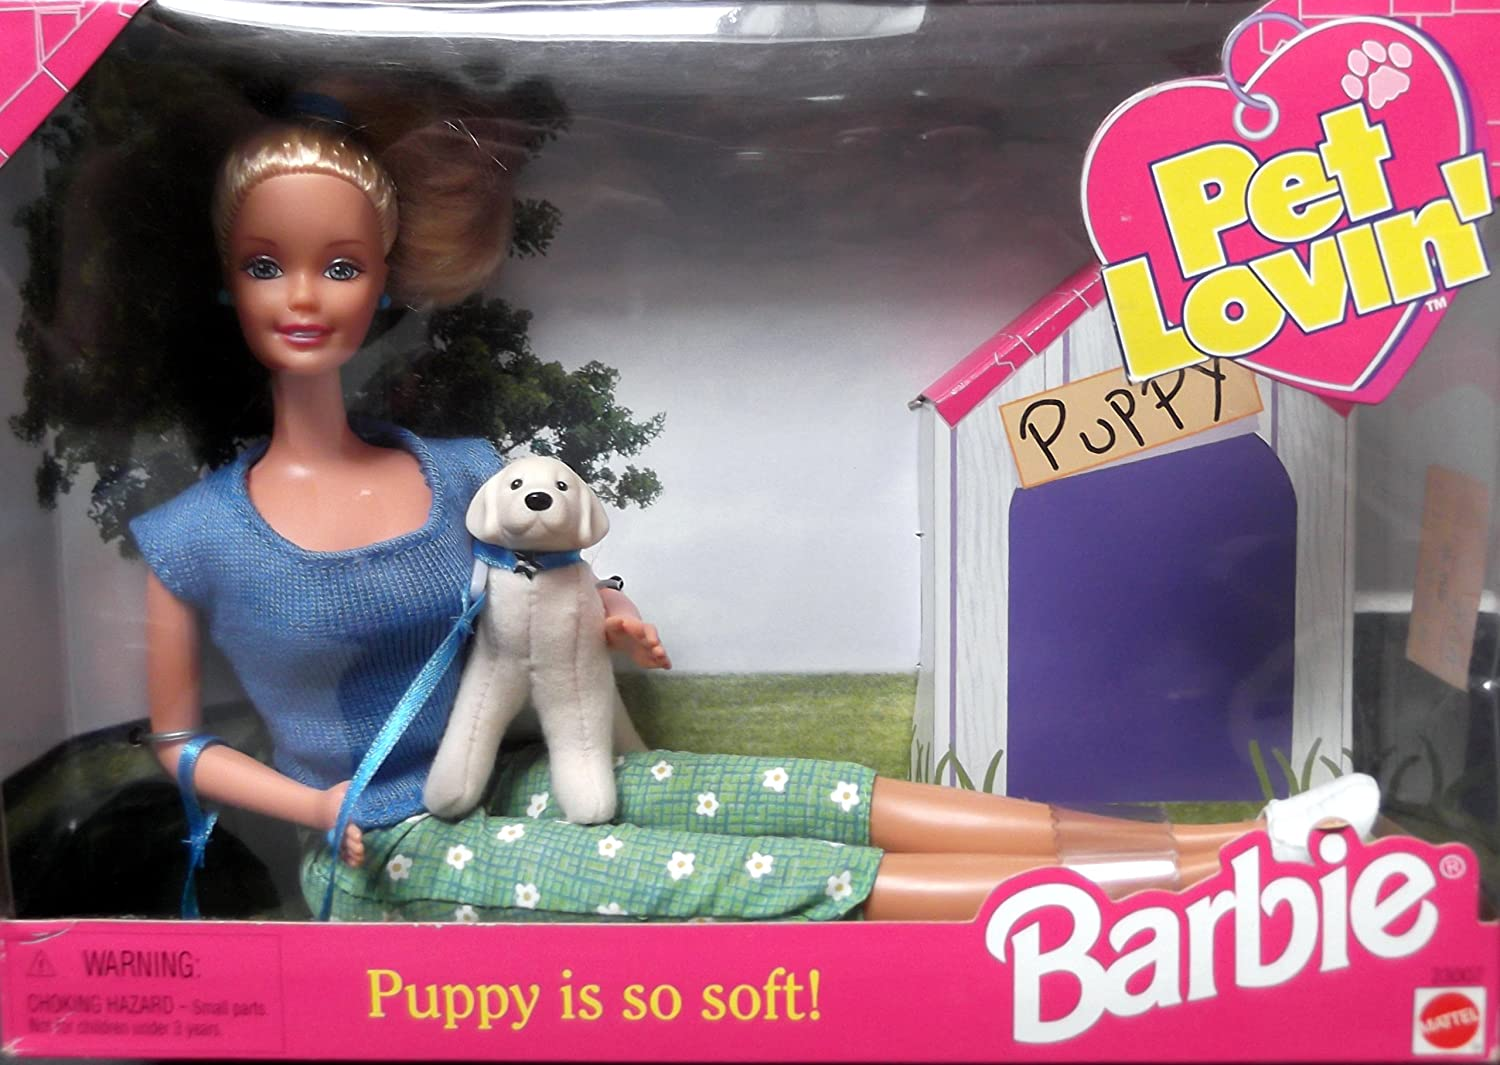 Pet Lovin' Barbie 1998 kaufen